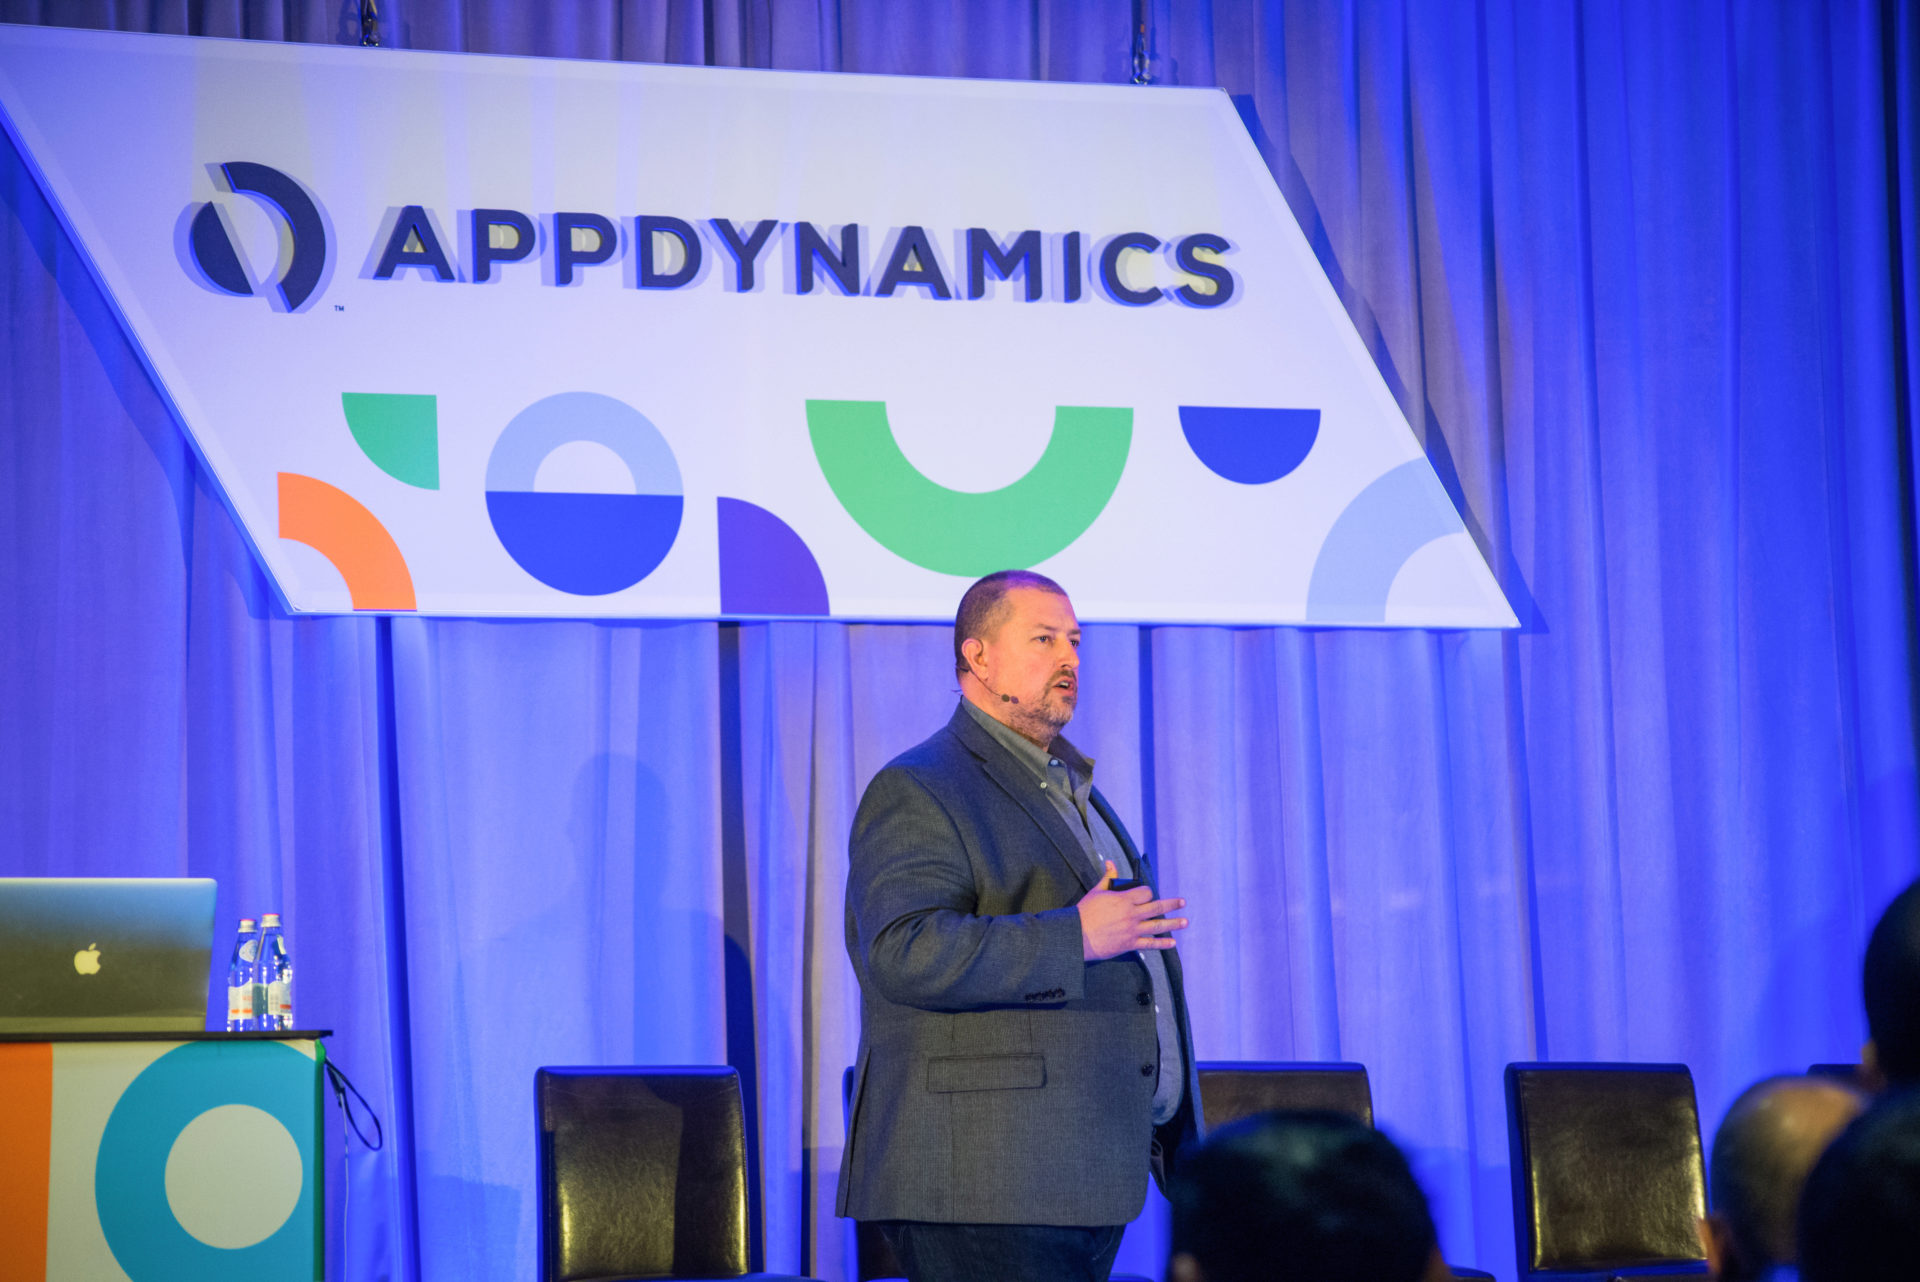 OHM_AppDynamics_SF_Top_Selects-5826.jpg